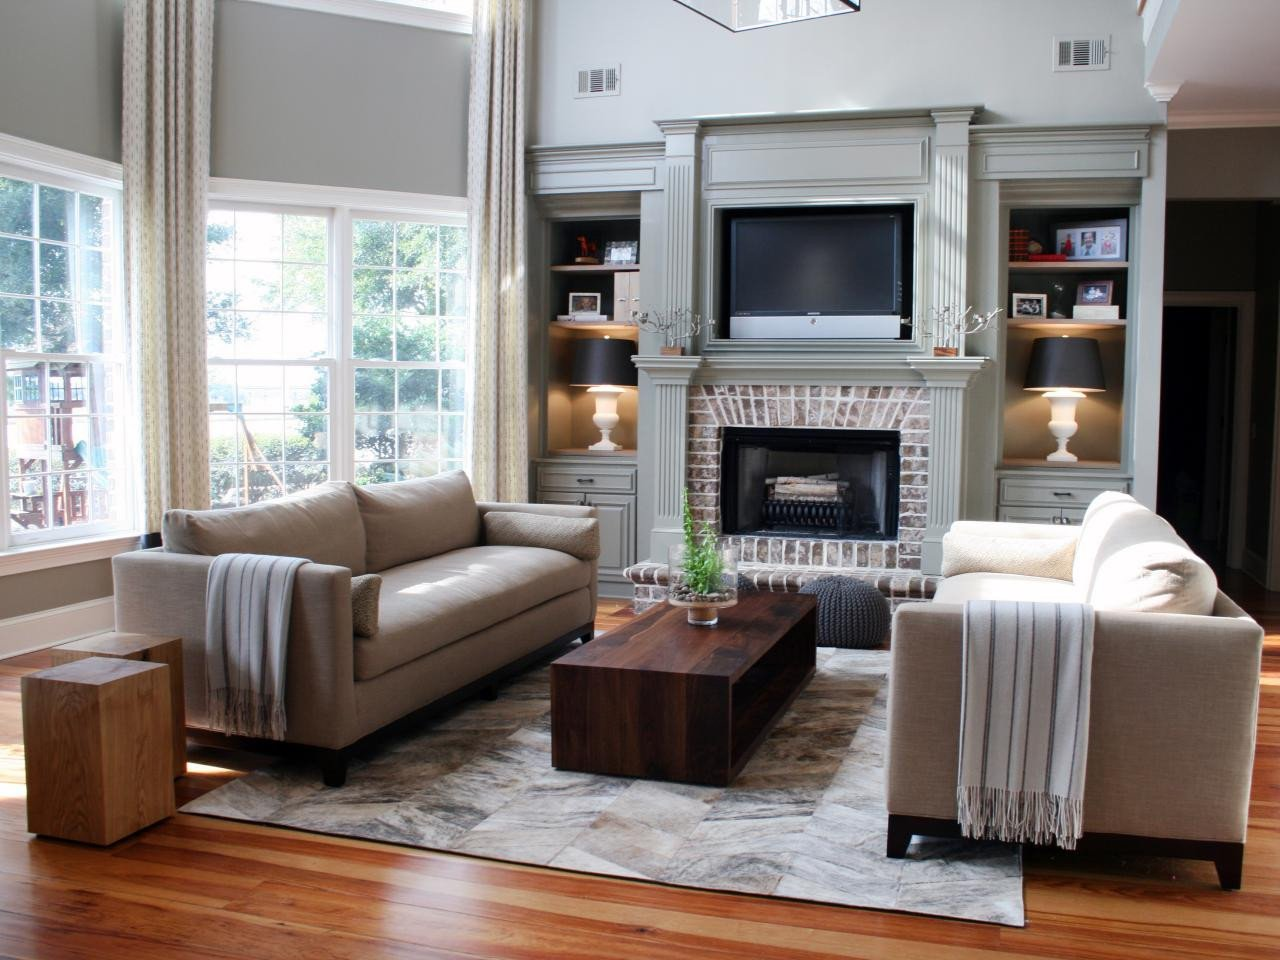 Small Living Roomwith Fireplace Ideas 20 Mantel and Bookshelf Decorating Tips